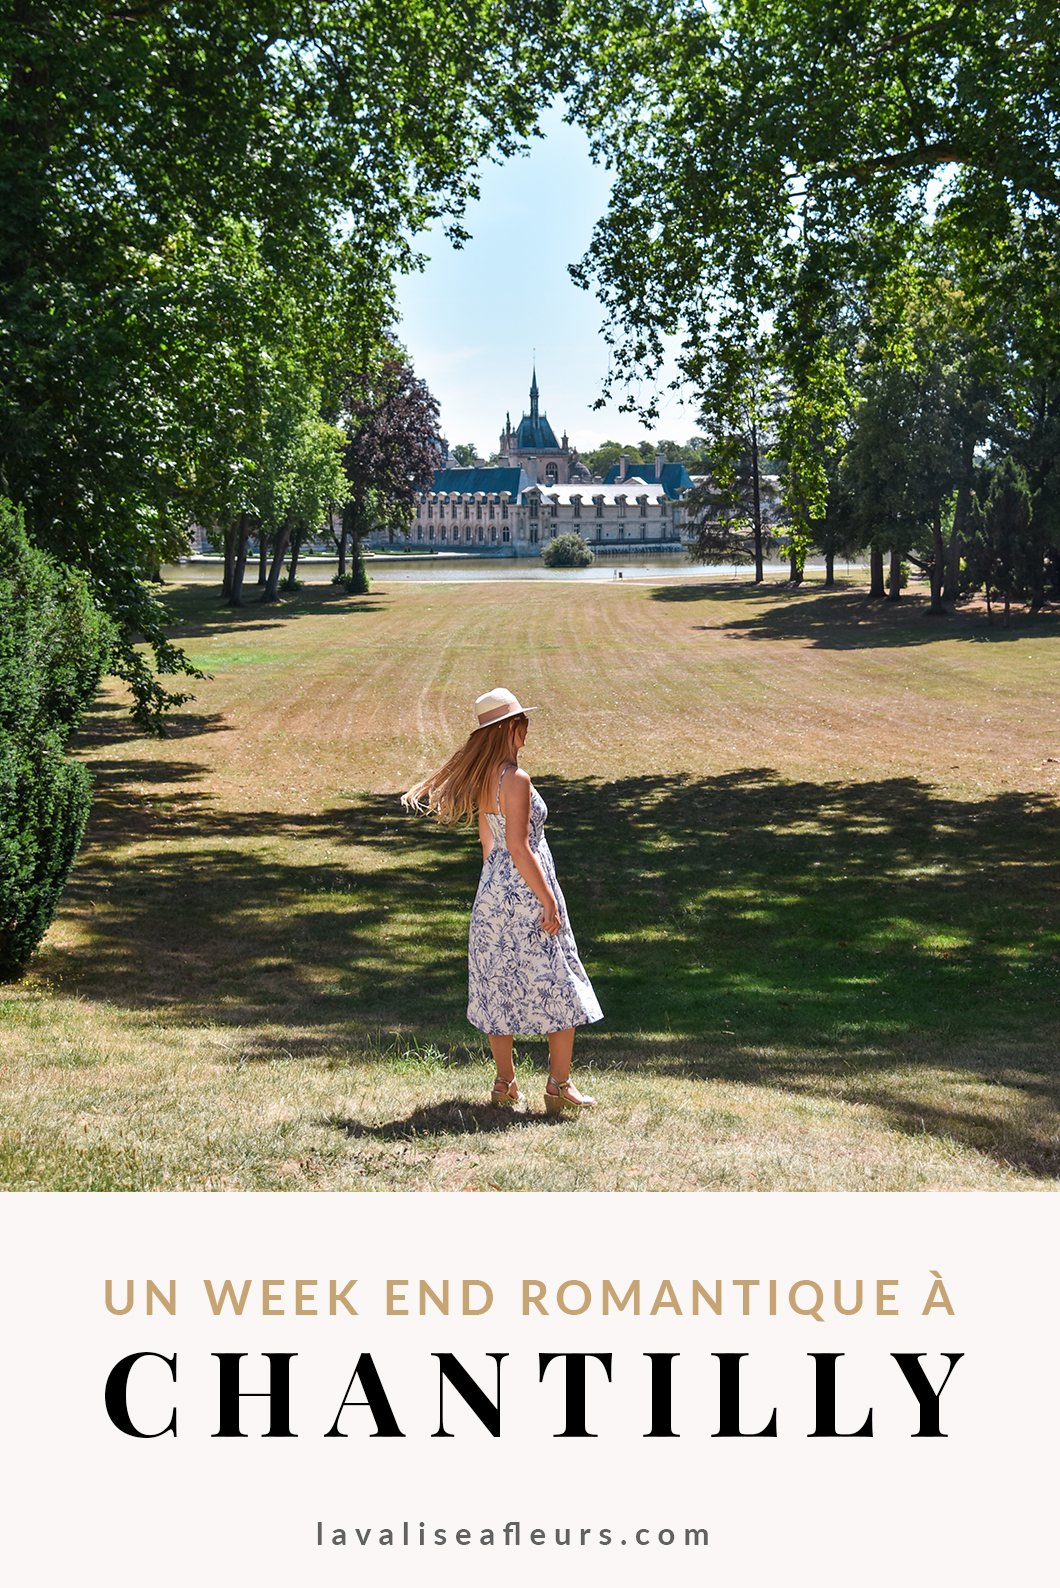 Un week end romantique à Chantilly